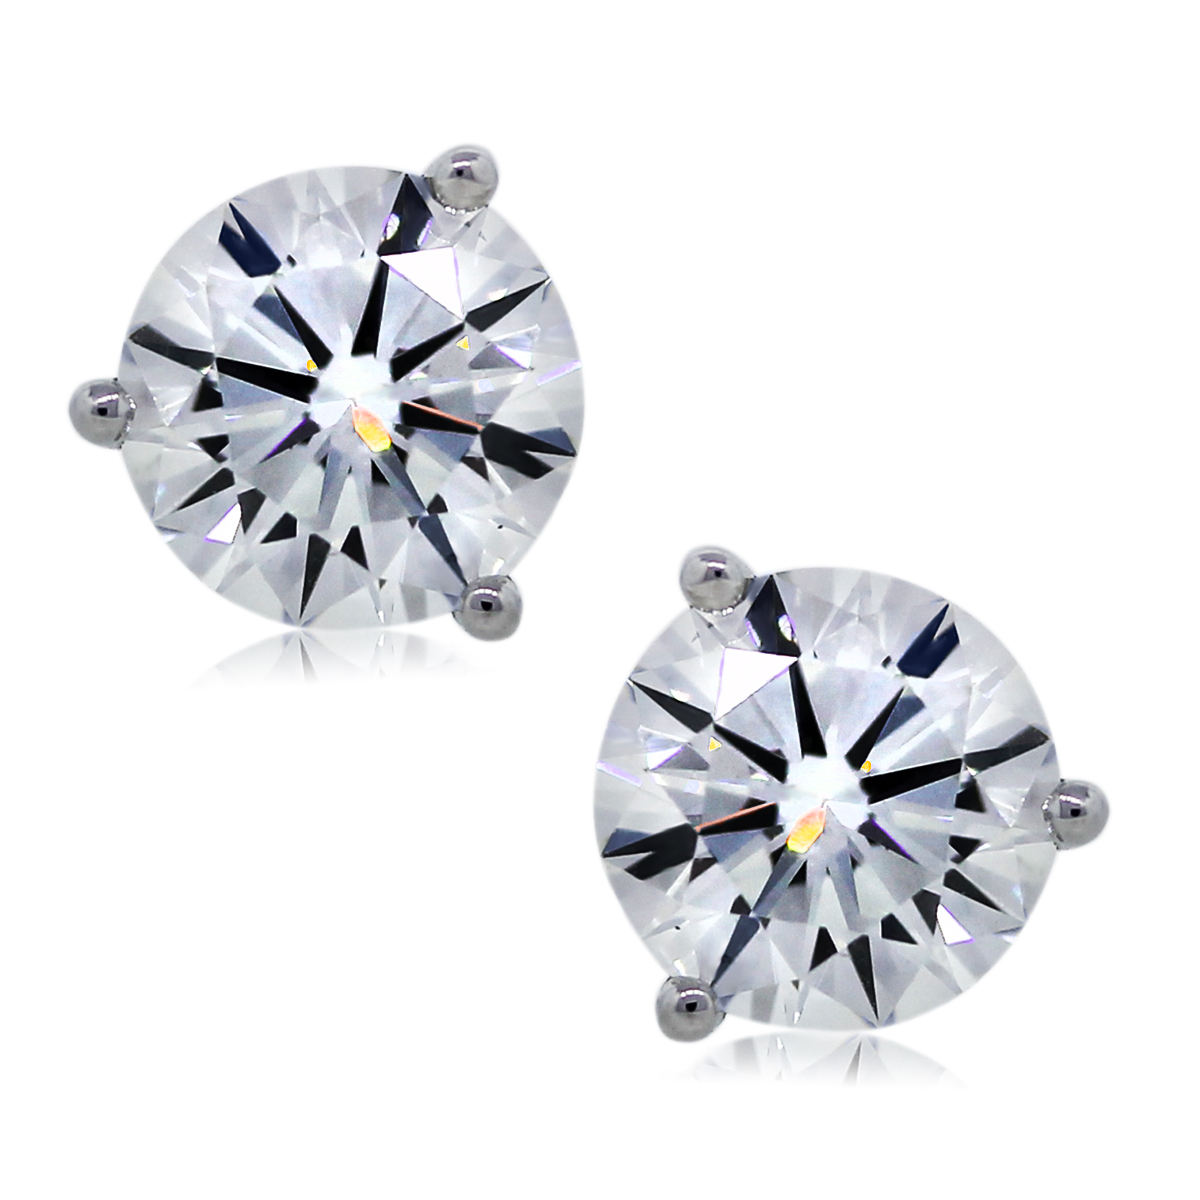 You are Viewing These 2.05ctw Diamond Stud Earrings!